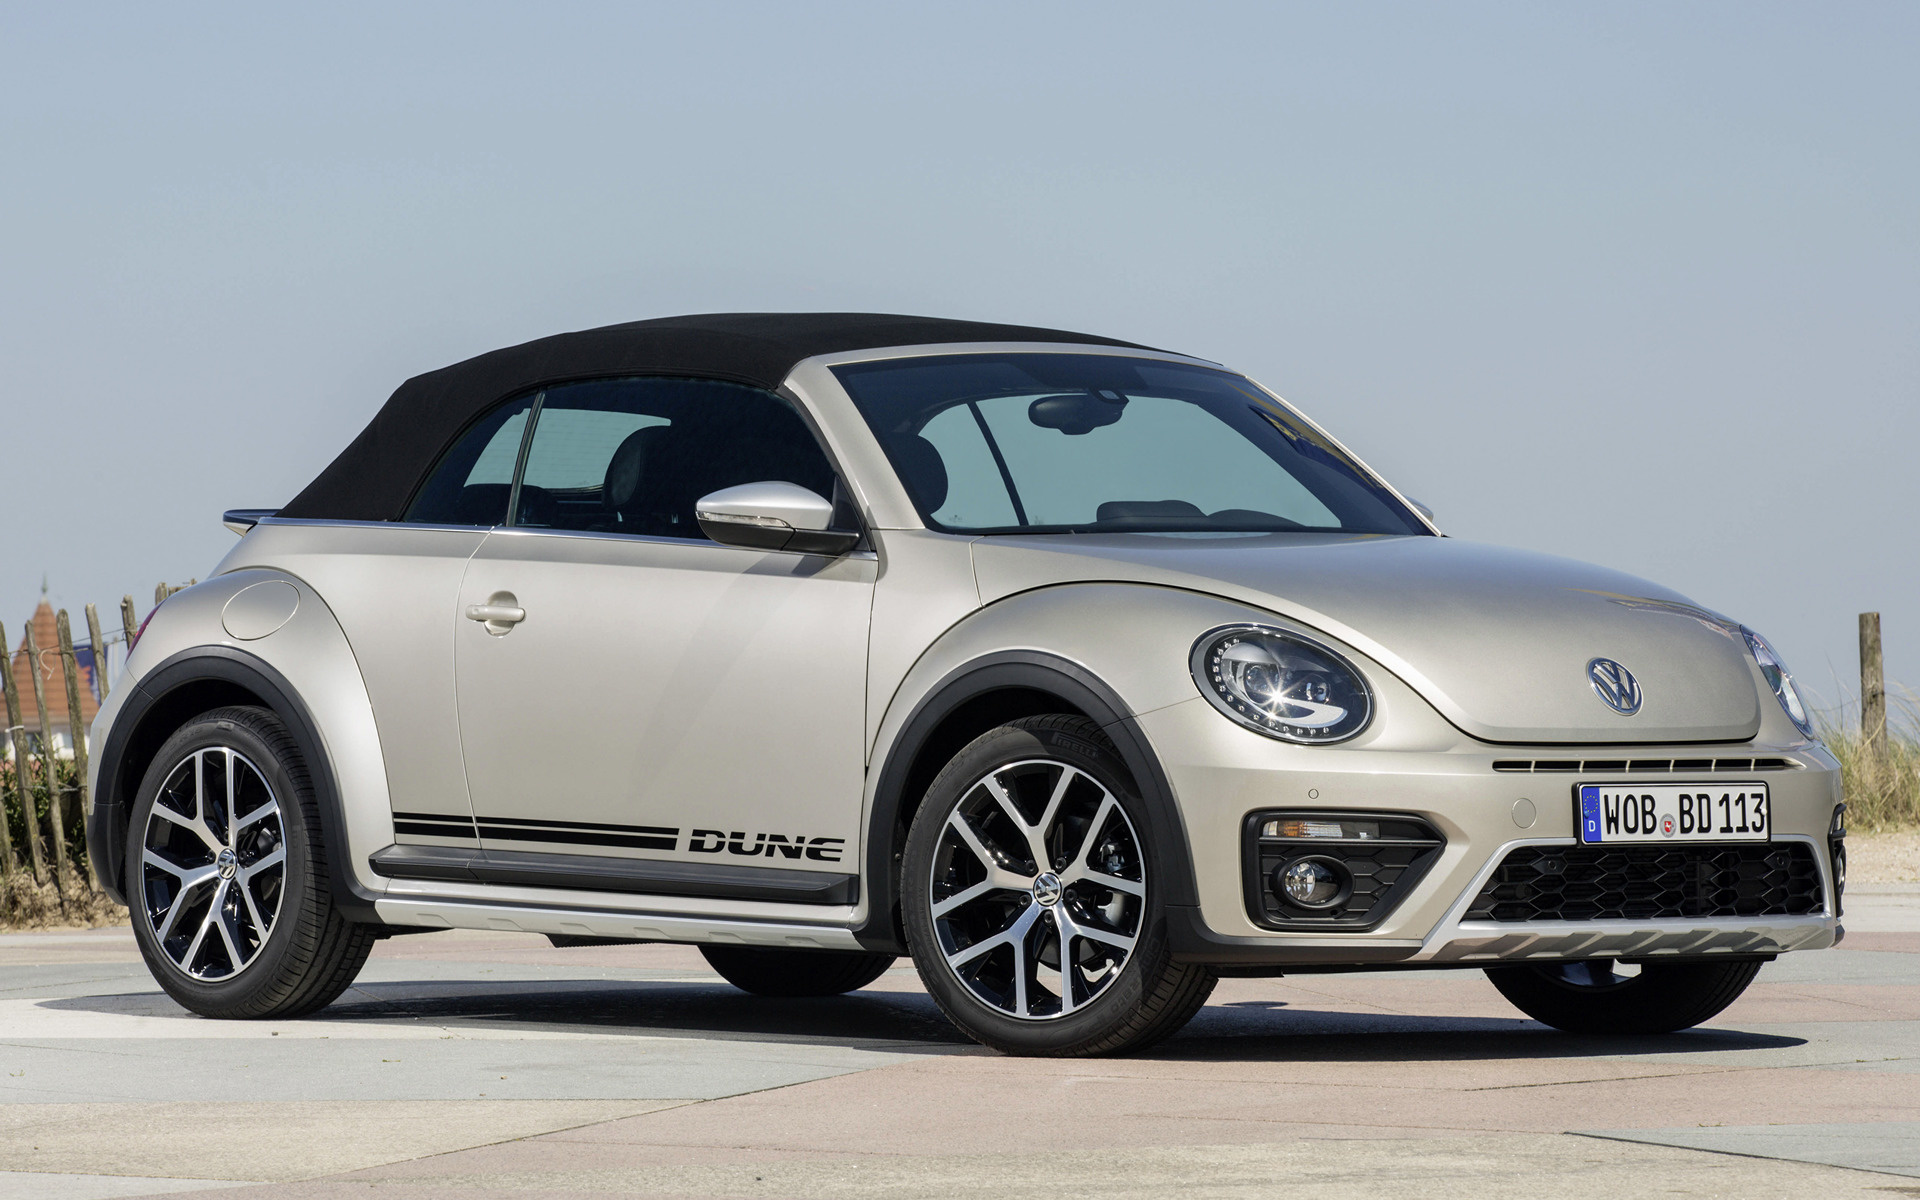 2016 Volkswagen Beetle Dune Cabriolet Wallpapers And Hd